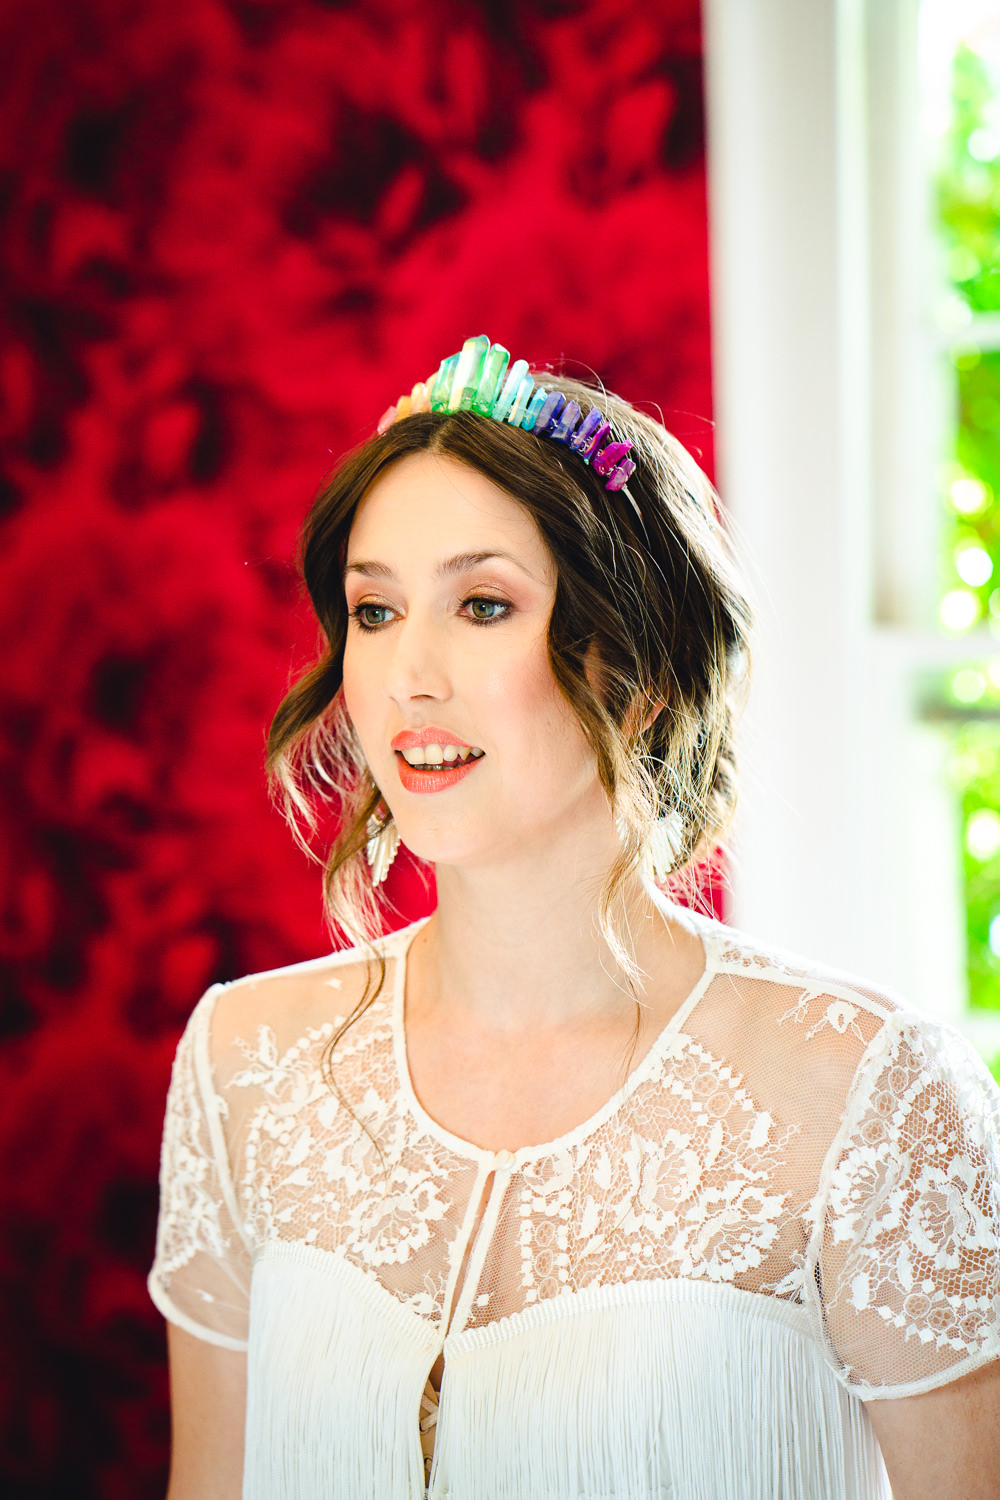 Bride Bridal Make Up Hair Rainbow Crystal Crown Tiara Birtsmorton Court Wedding The Dignums